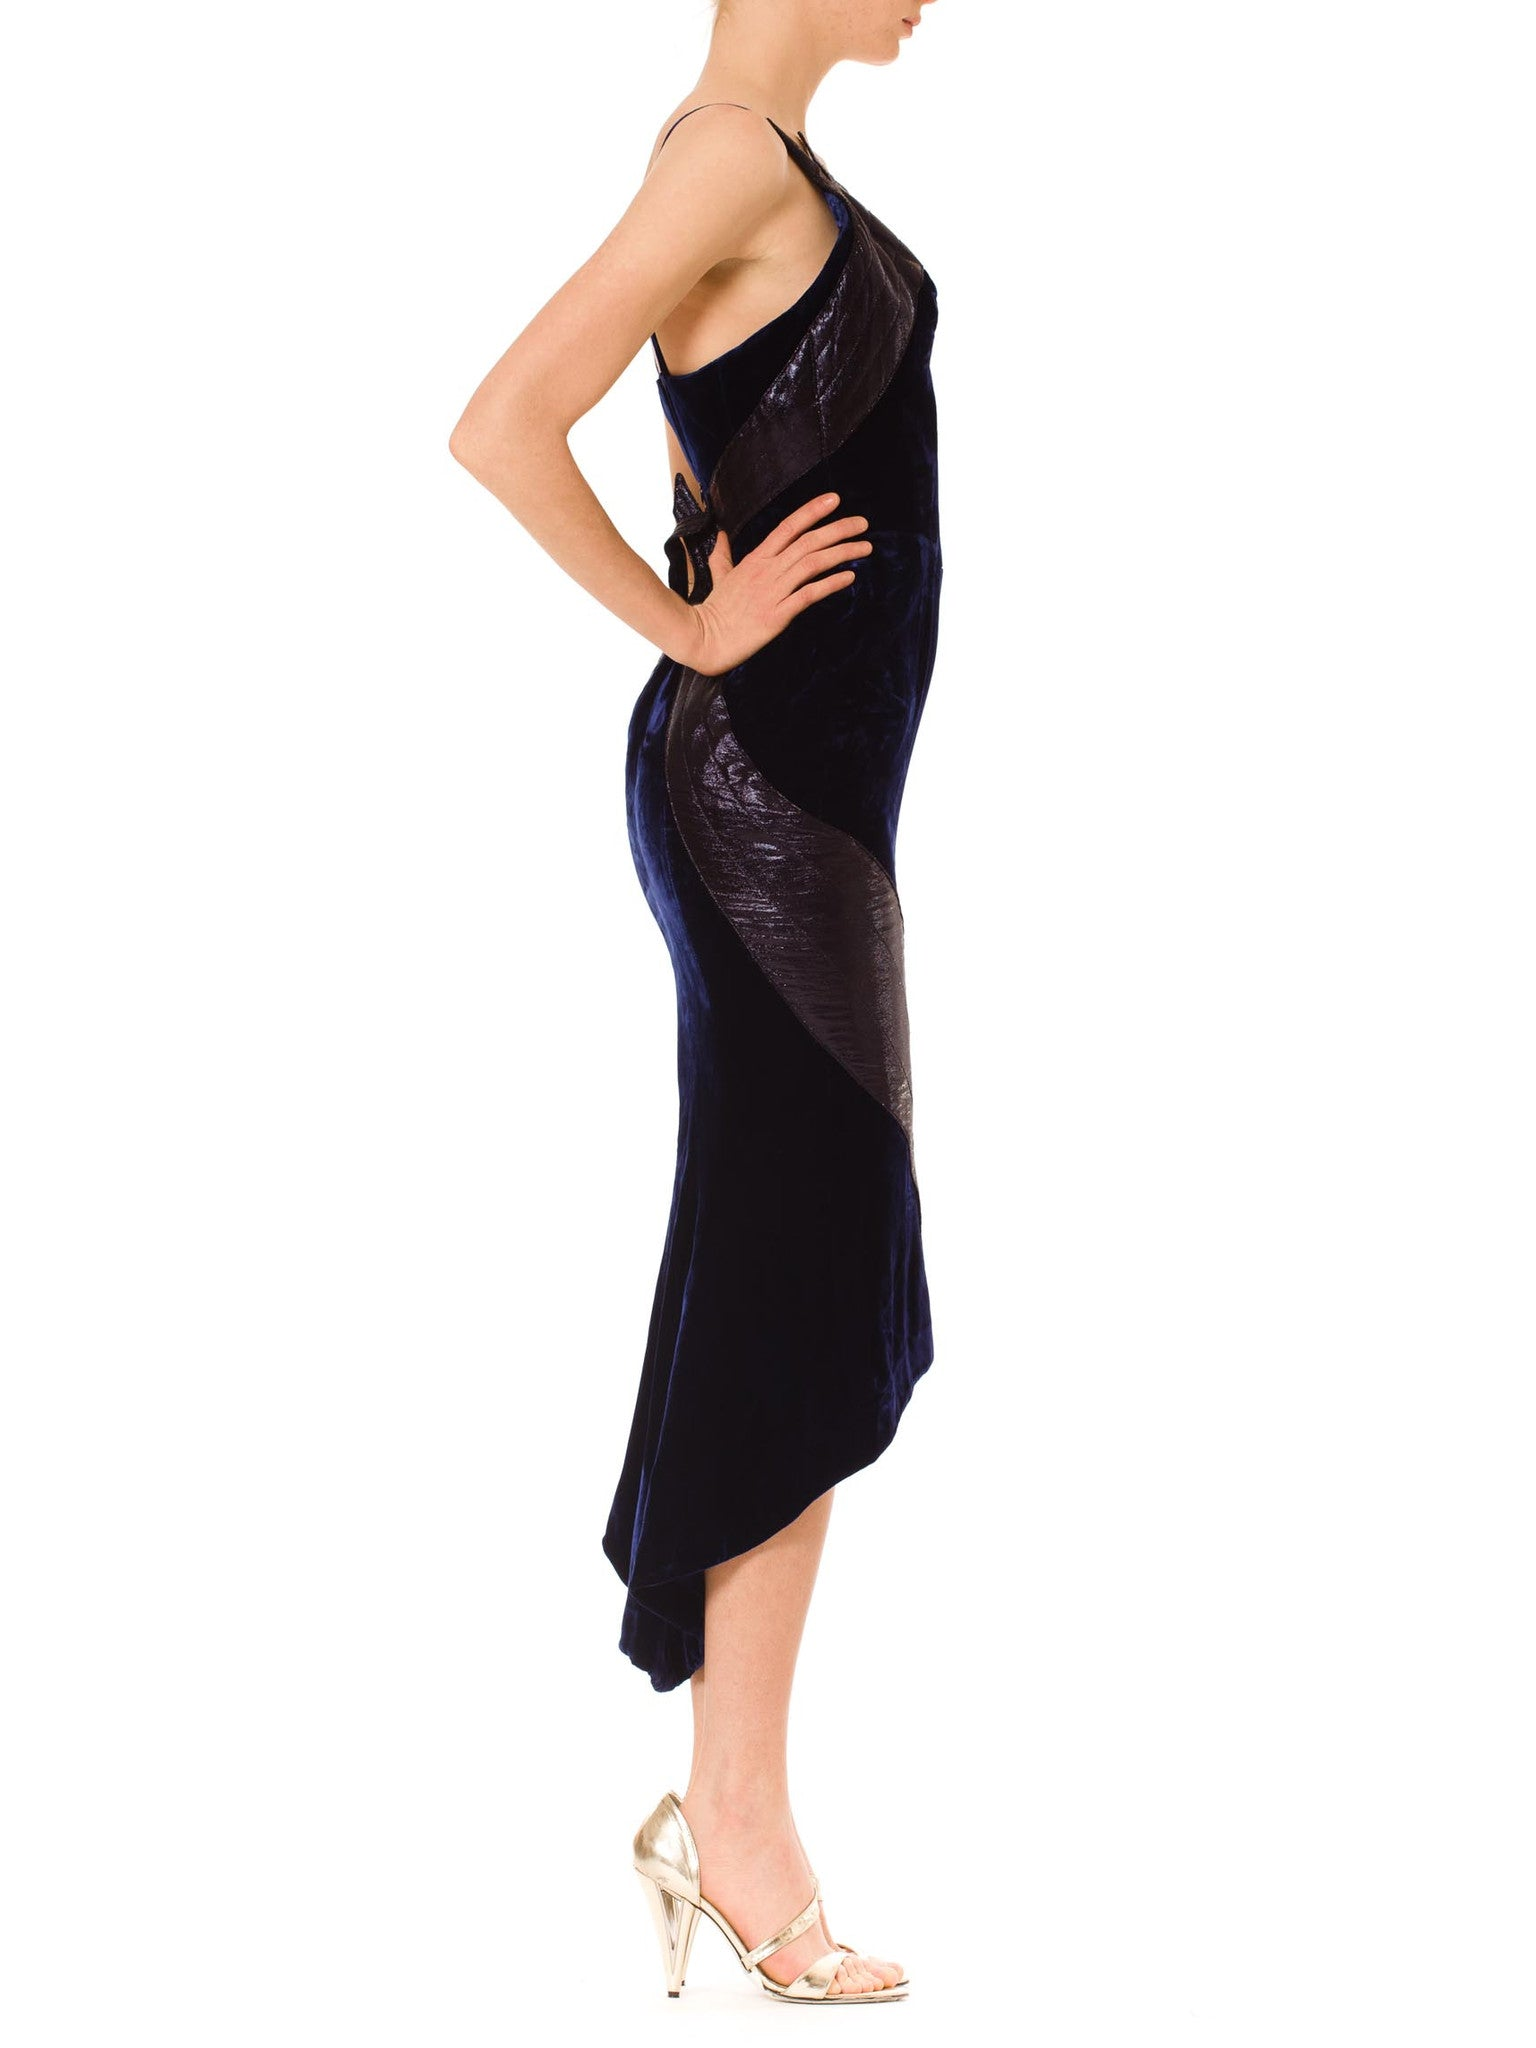 1980S THIERRY MUGLER Sapphire Blue  Rayon Velvet Cocktail Dress With Black Lamé Figure Hugging Fins